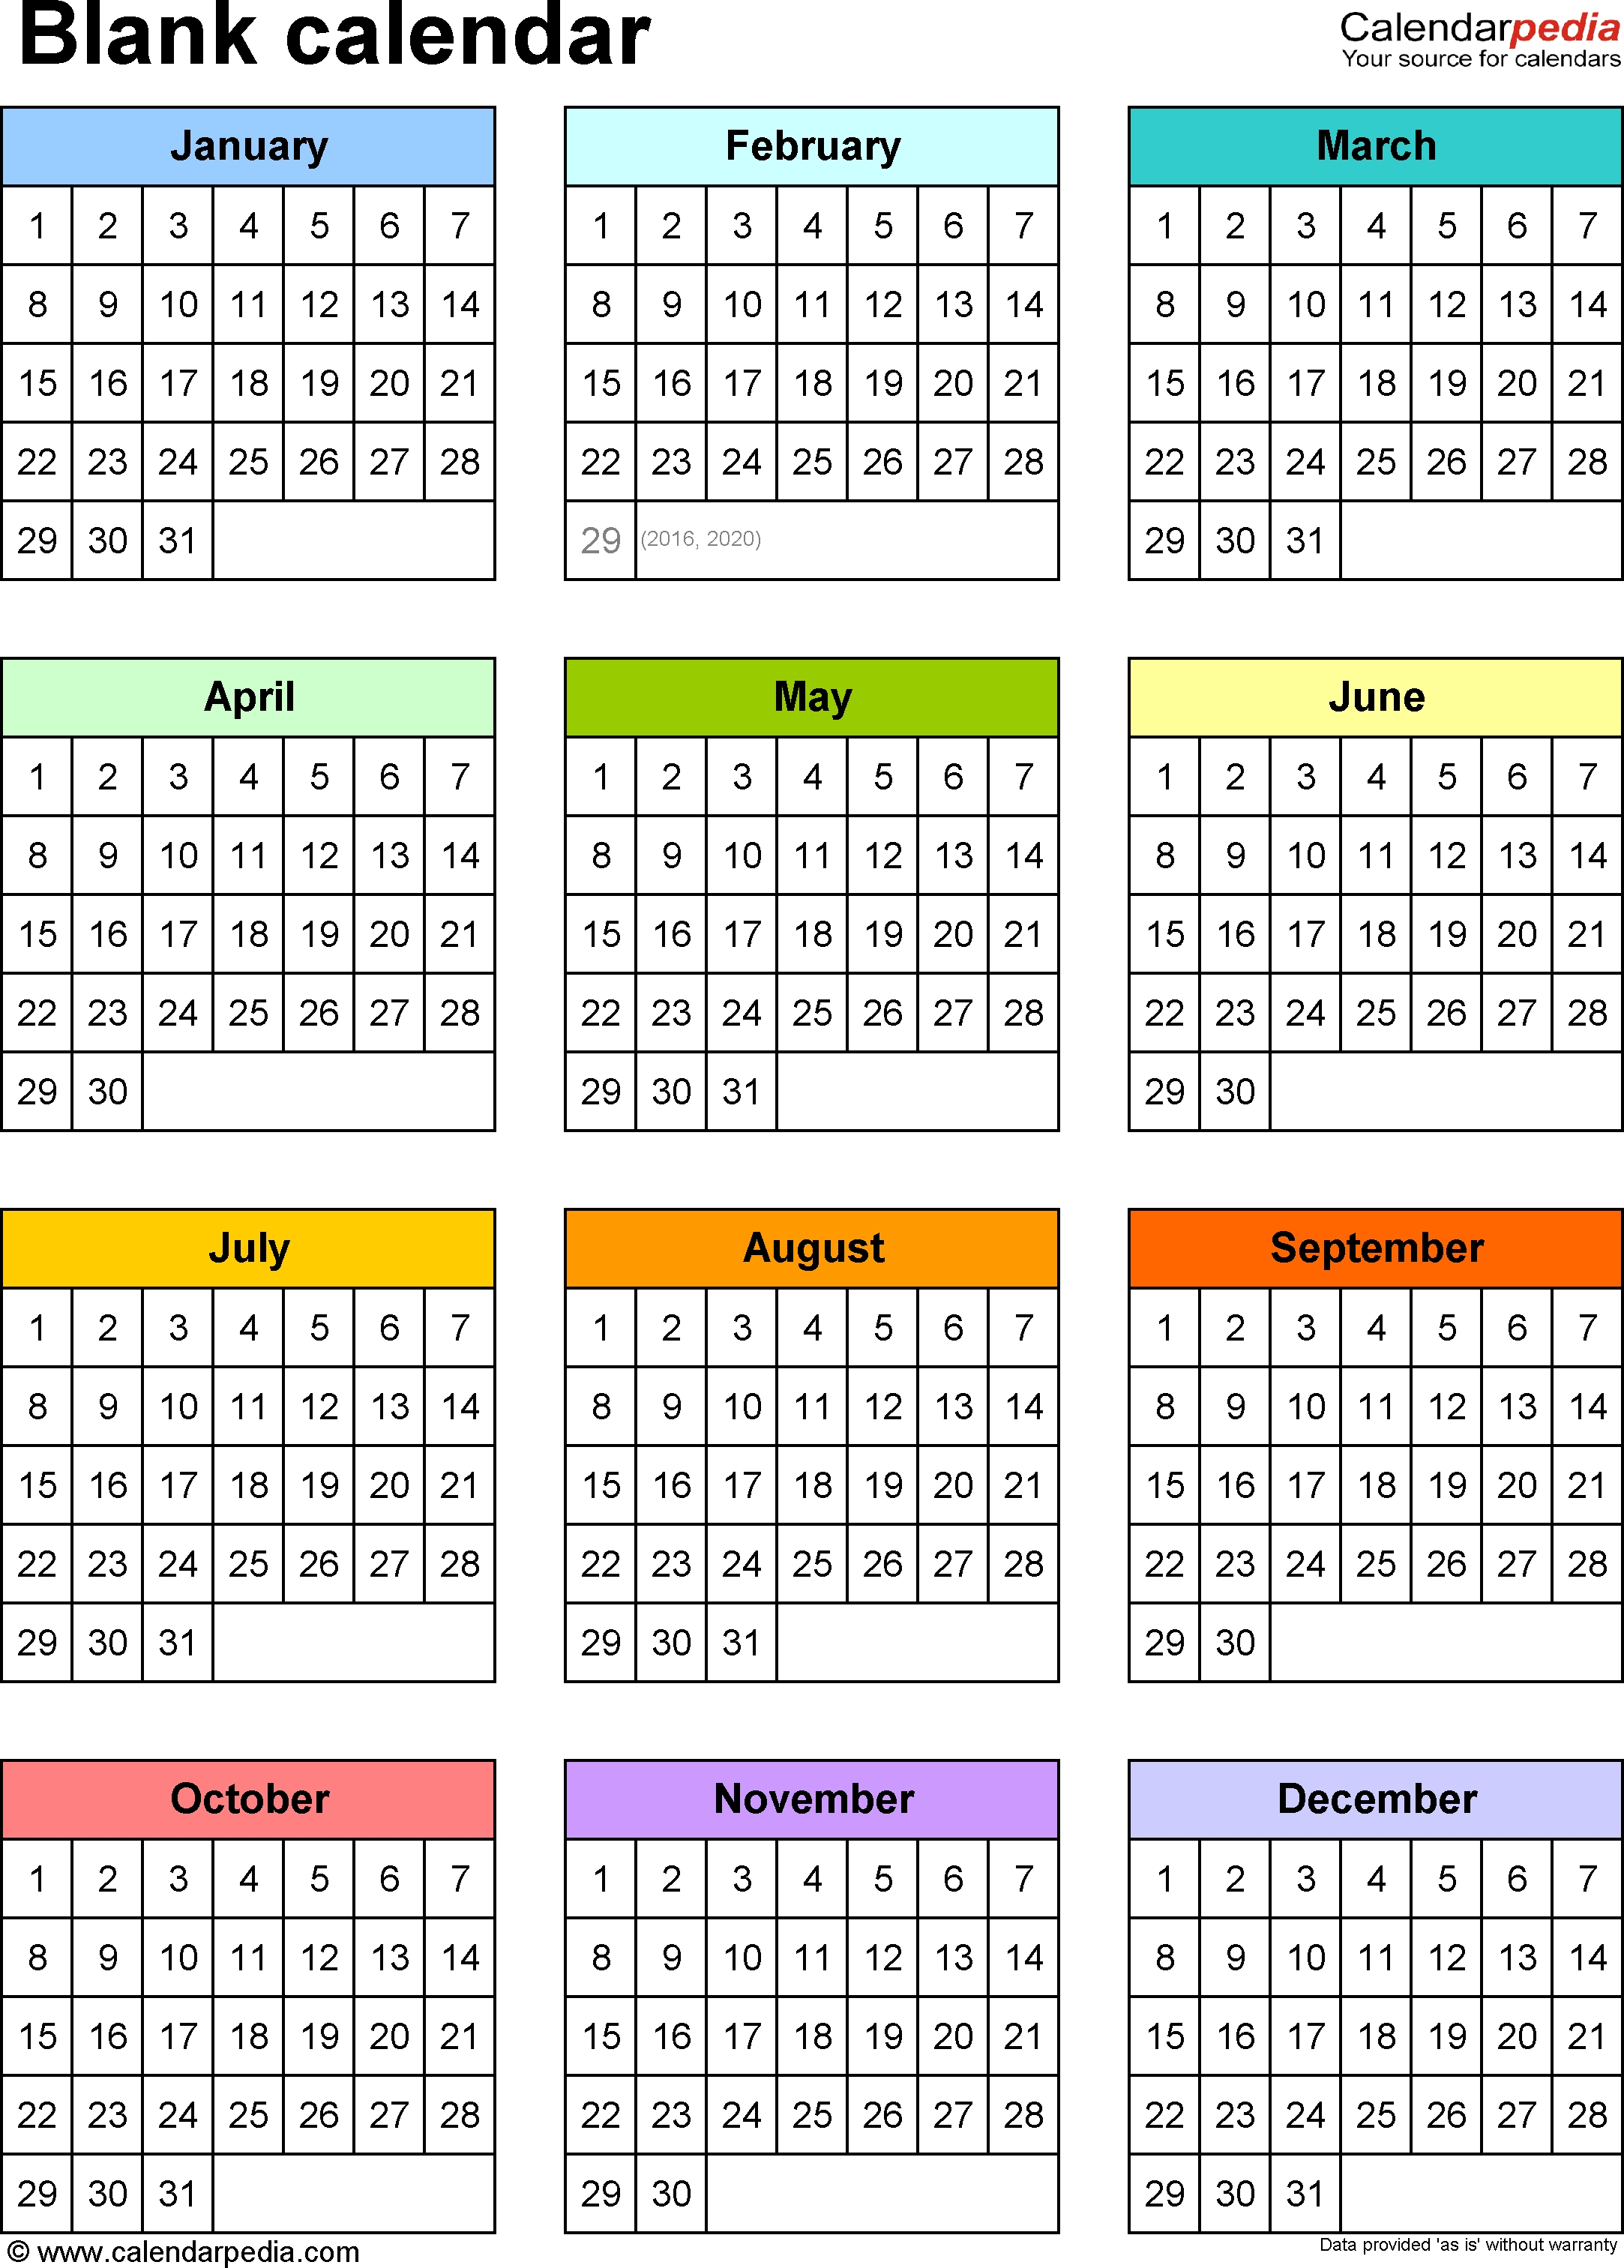 Blank Calendar - 9 Free Printable Microsoft Word Templates  Template For Year At A Glance Calendar